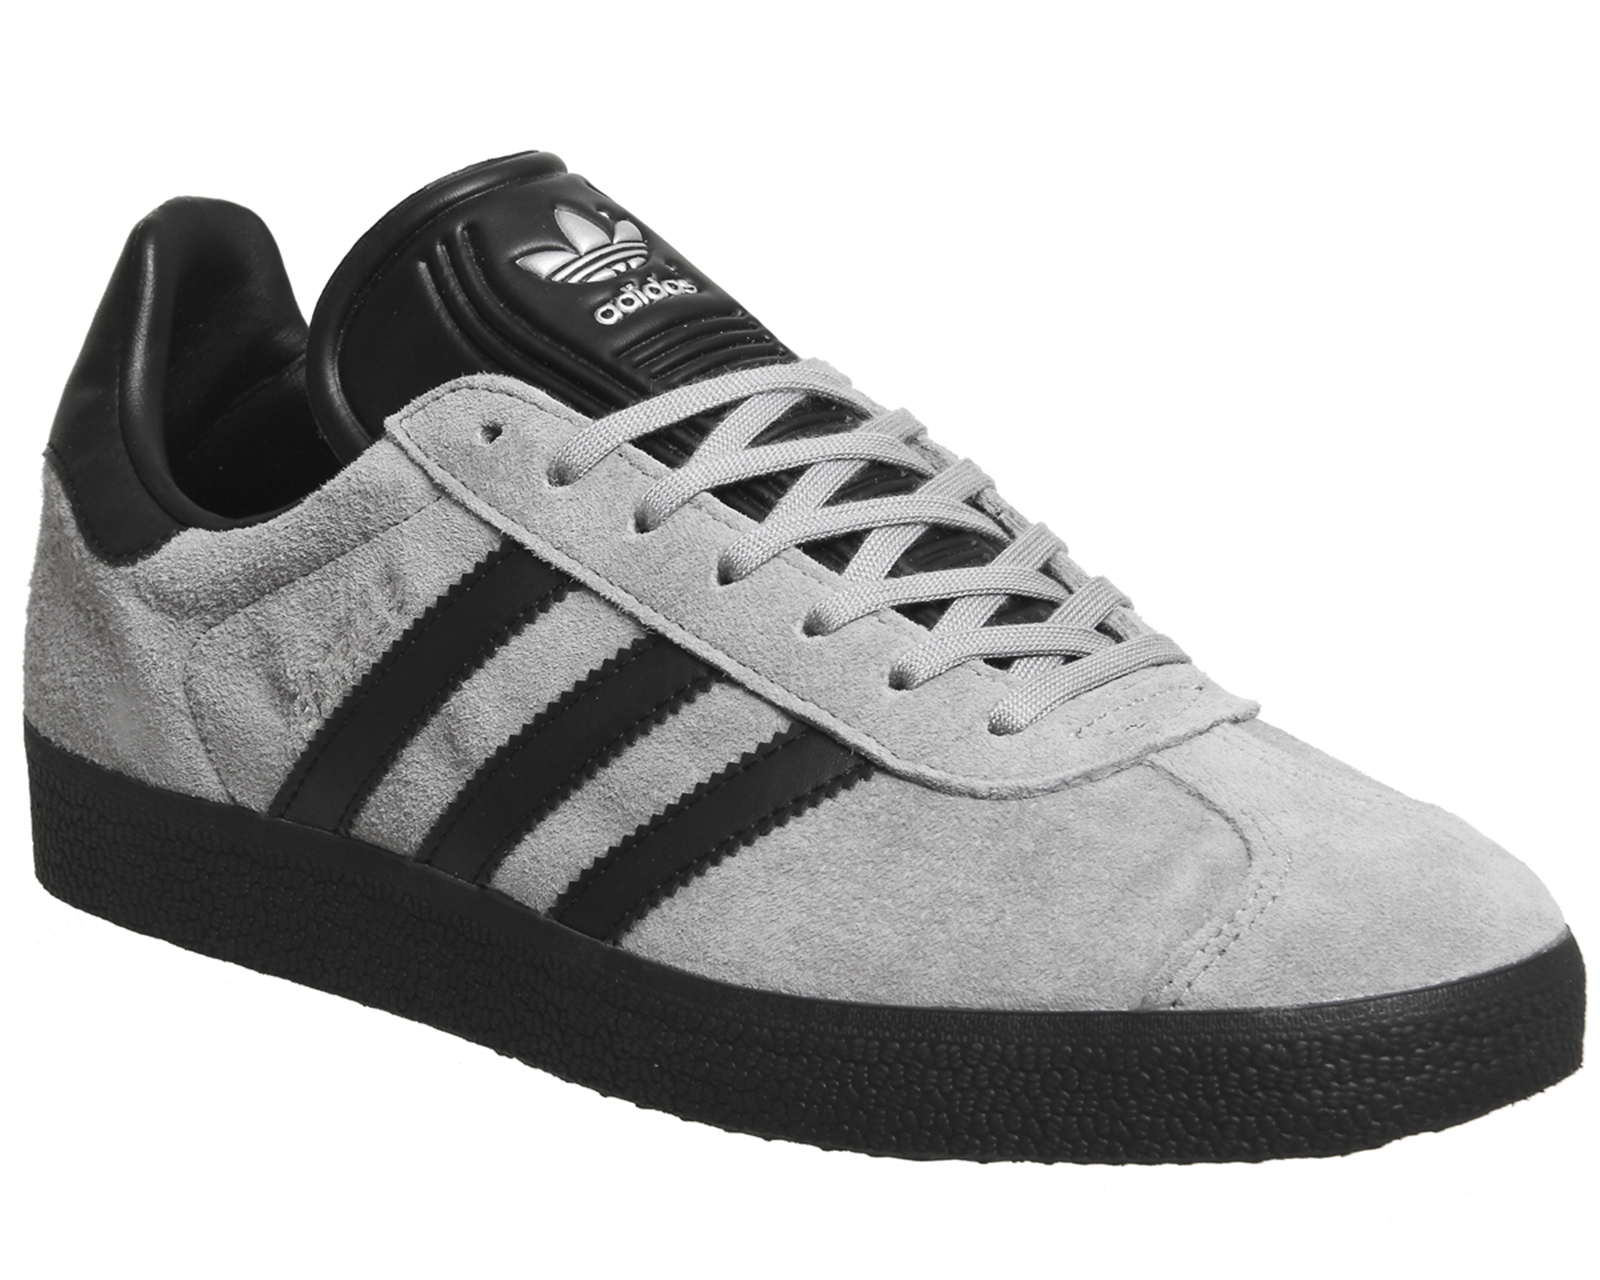 info for 1a0ad d079f Sentinel Mens Adidas Gazelle Trainers Grey Black Exclusive Trainers Shoes